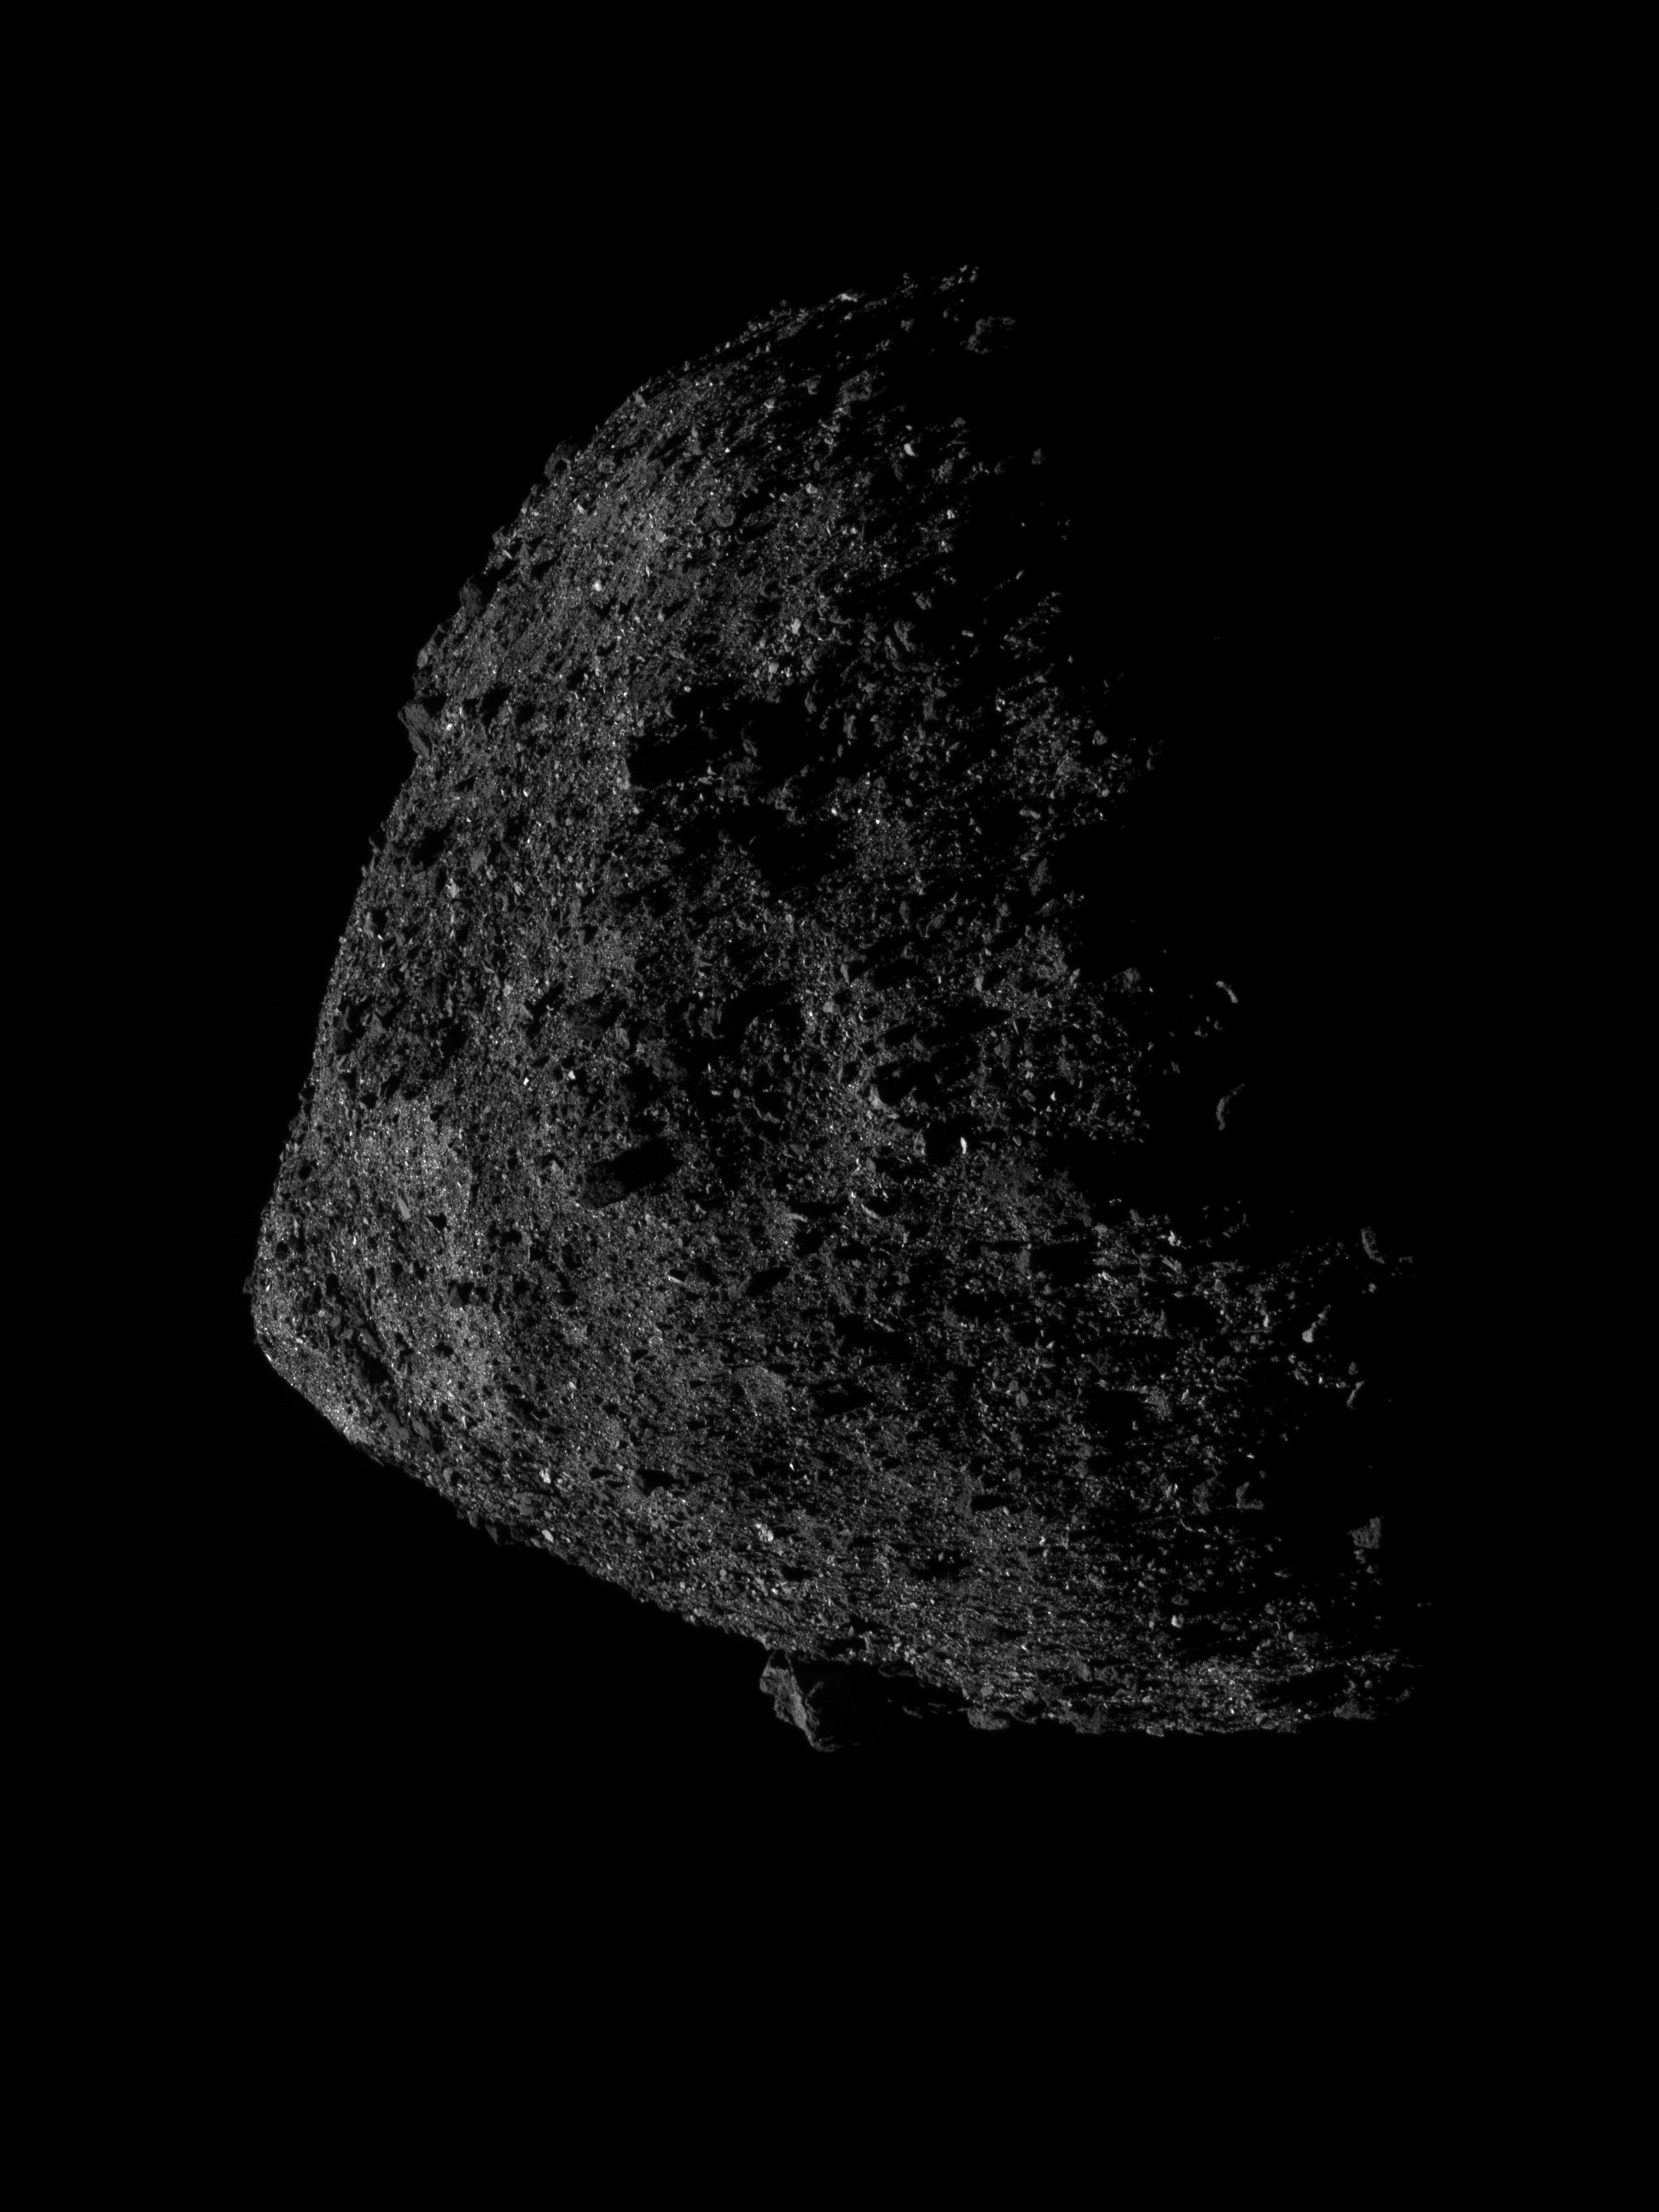 NASA's best-yet photo of asteroid Bennu nails the dramatic lighting